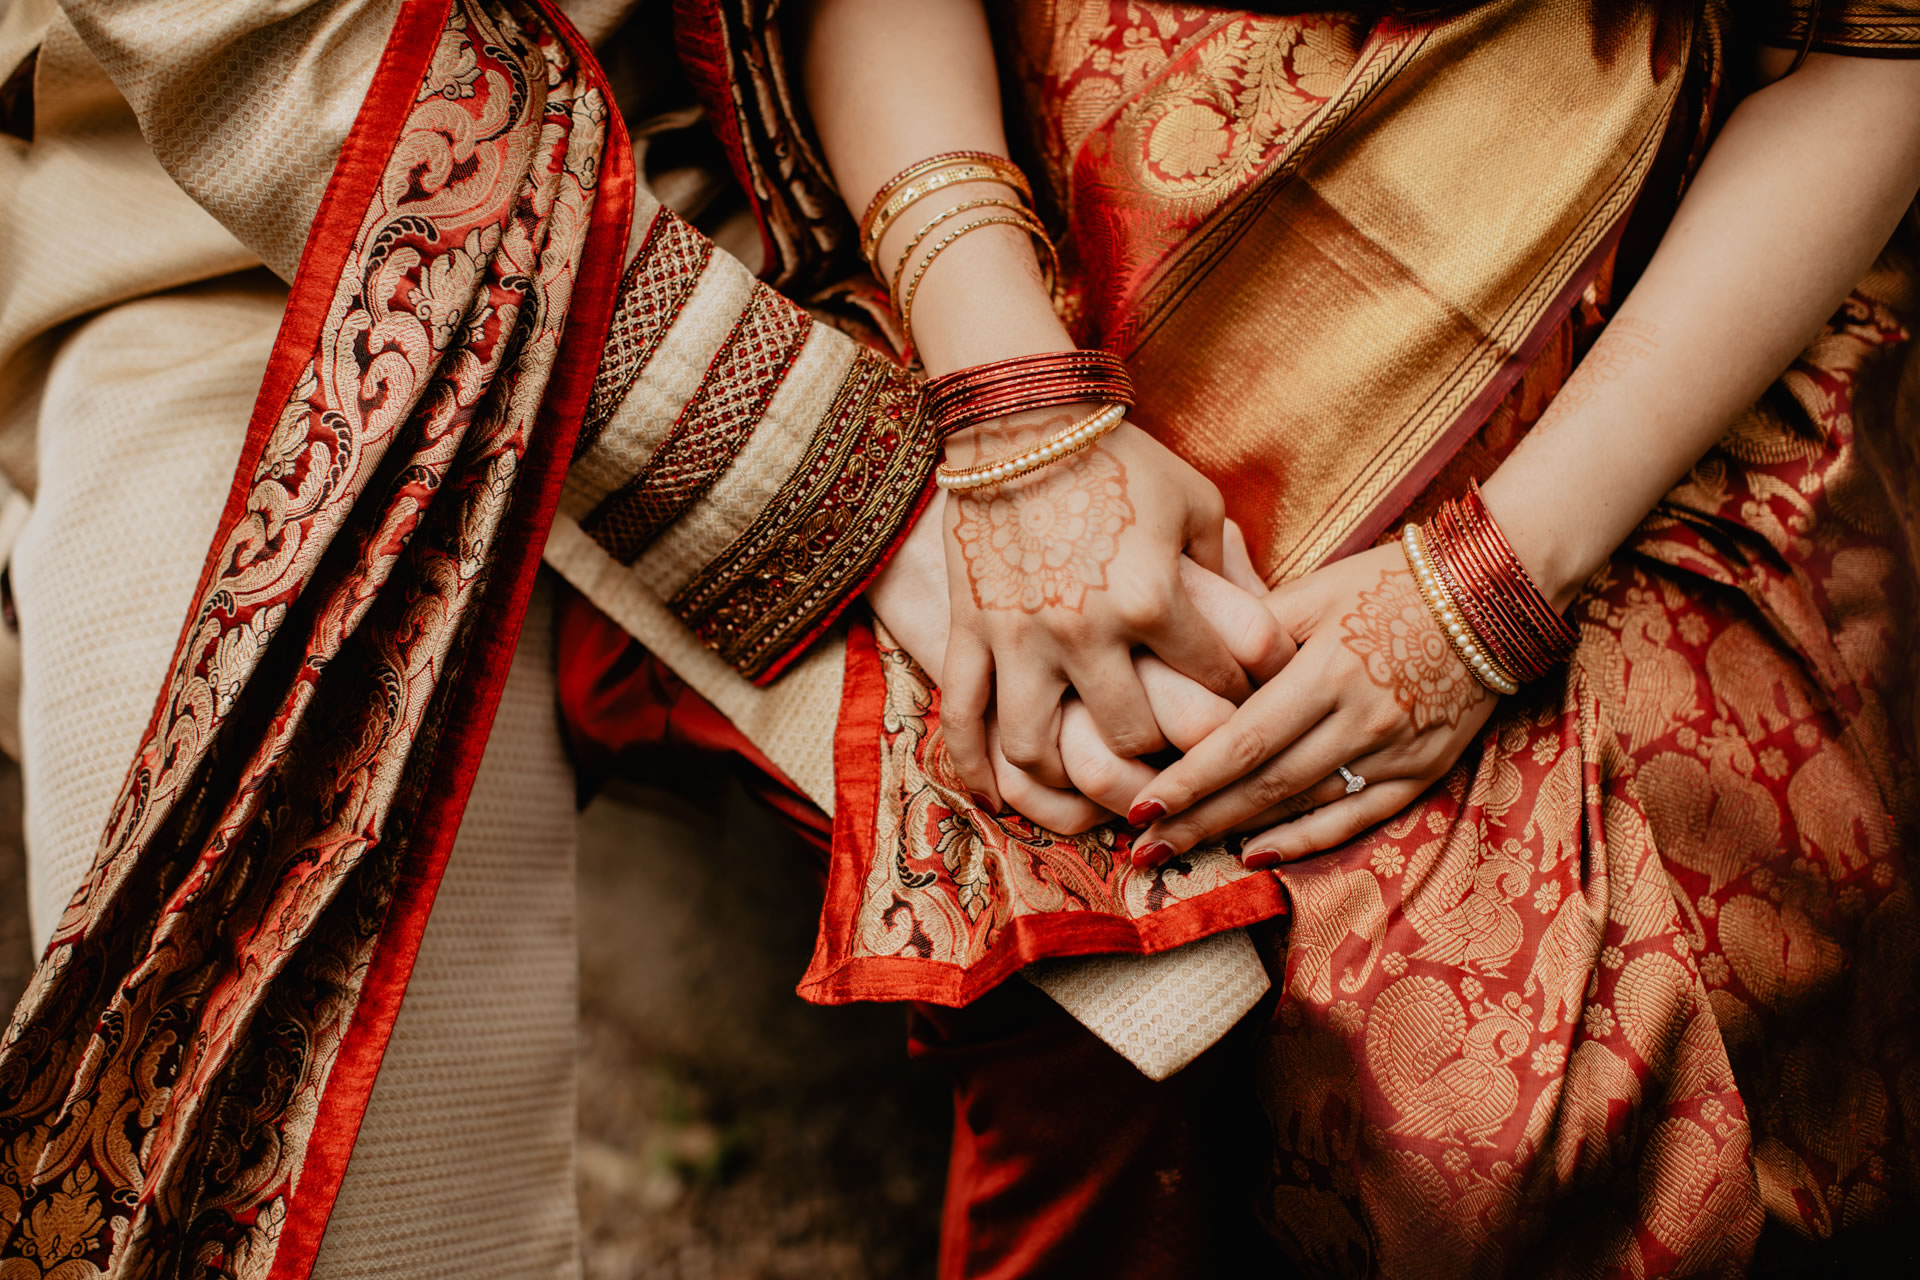 - 27 :: Indian wedding ceremony at Villa Pitiana :: Luxury wedding photography - 26 ::  - 27